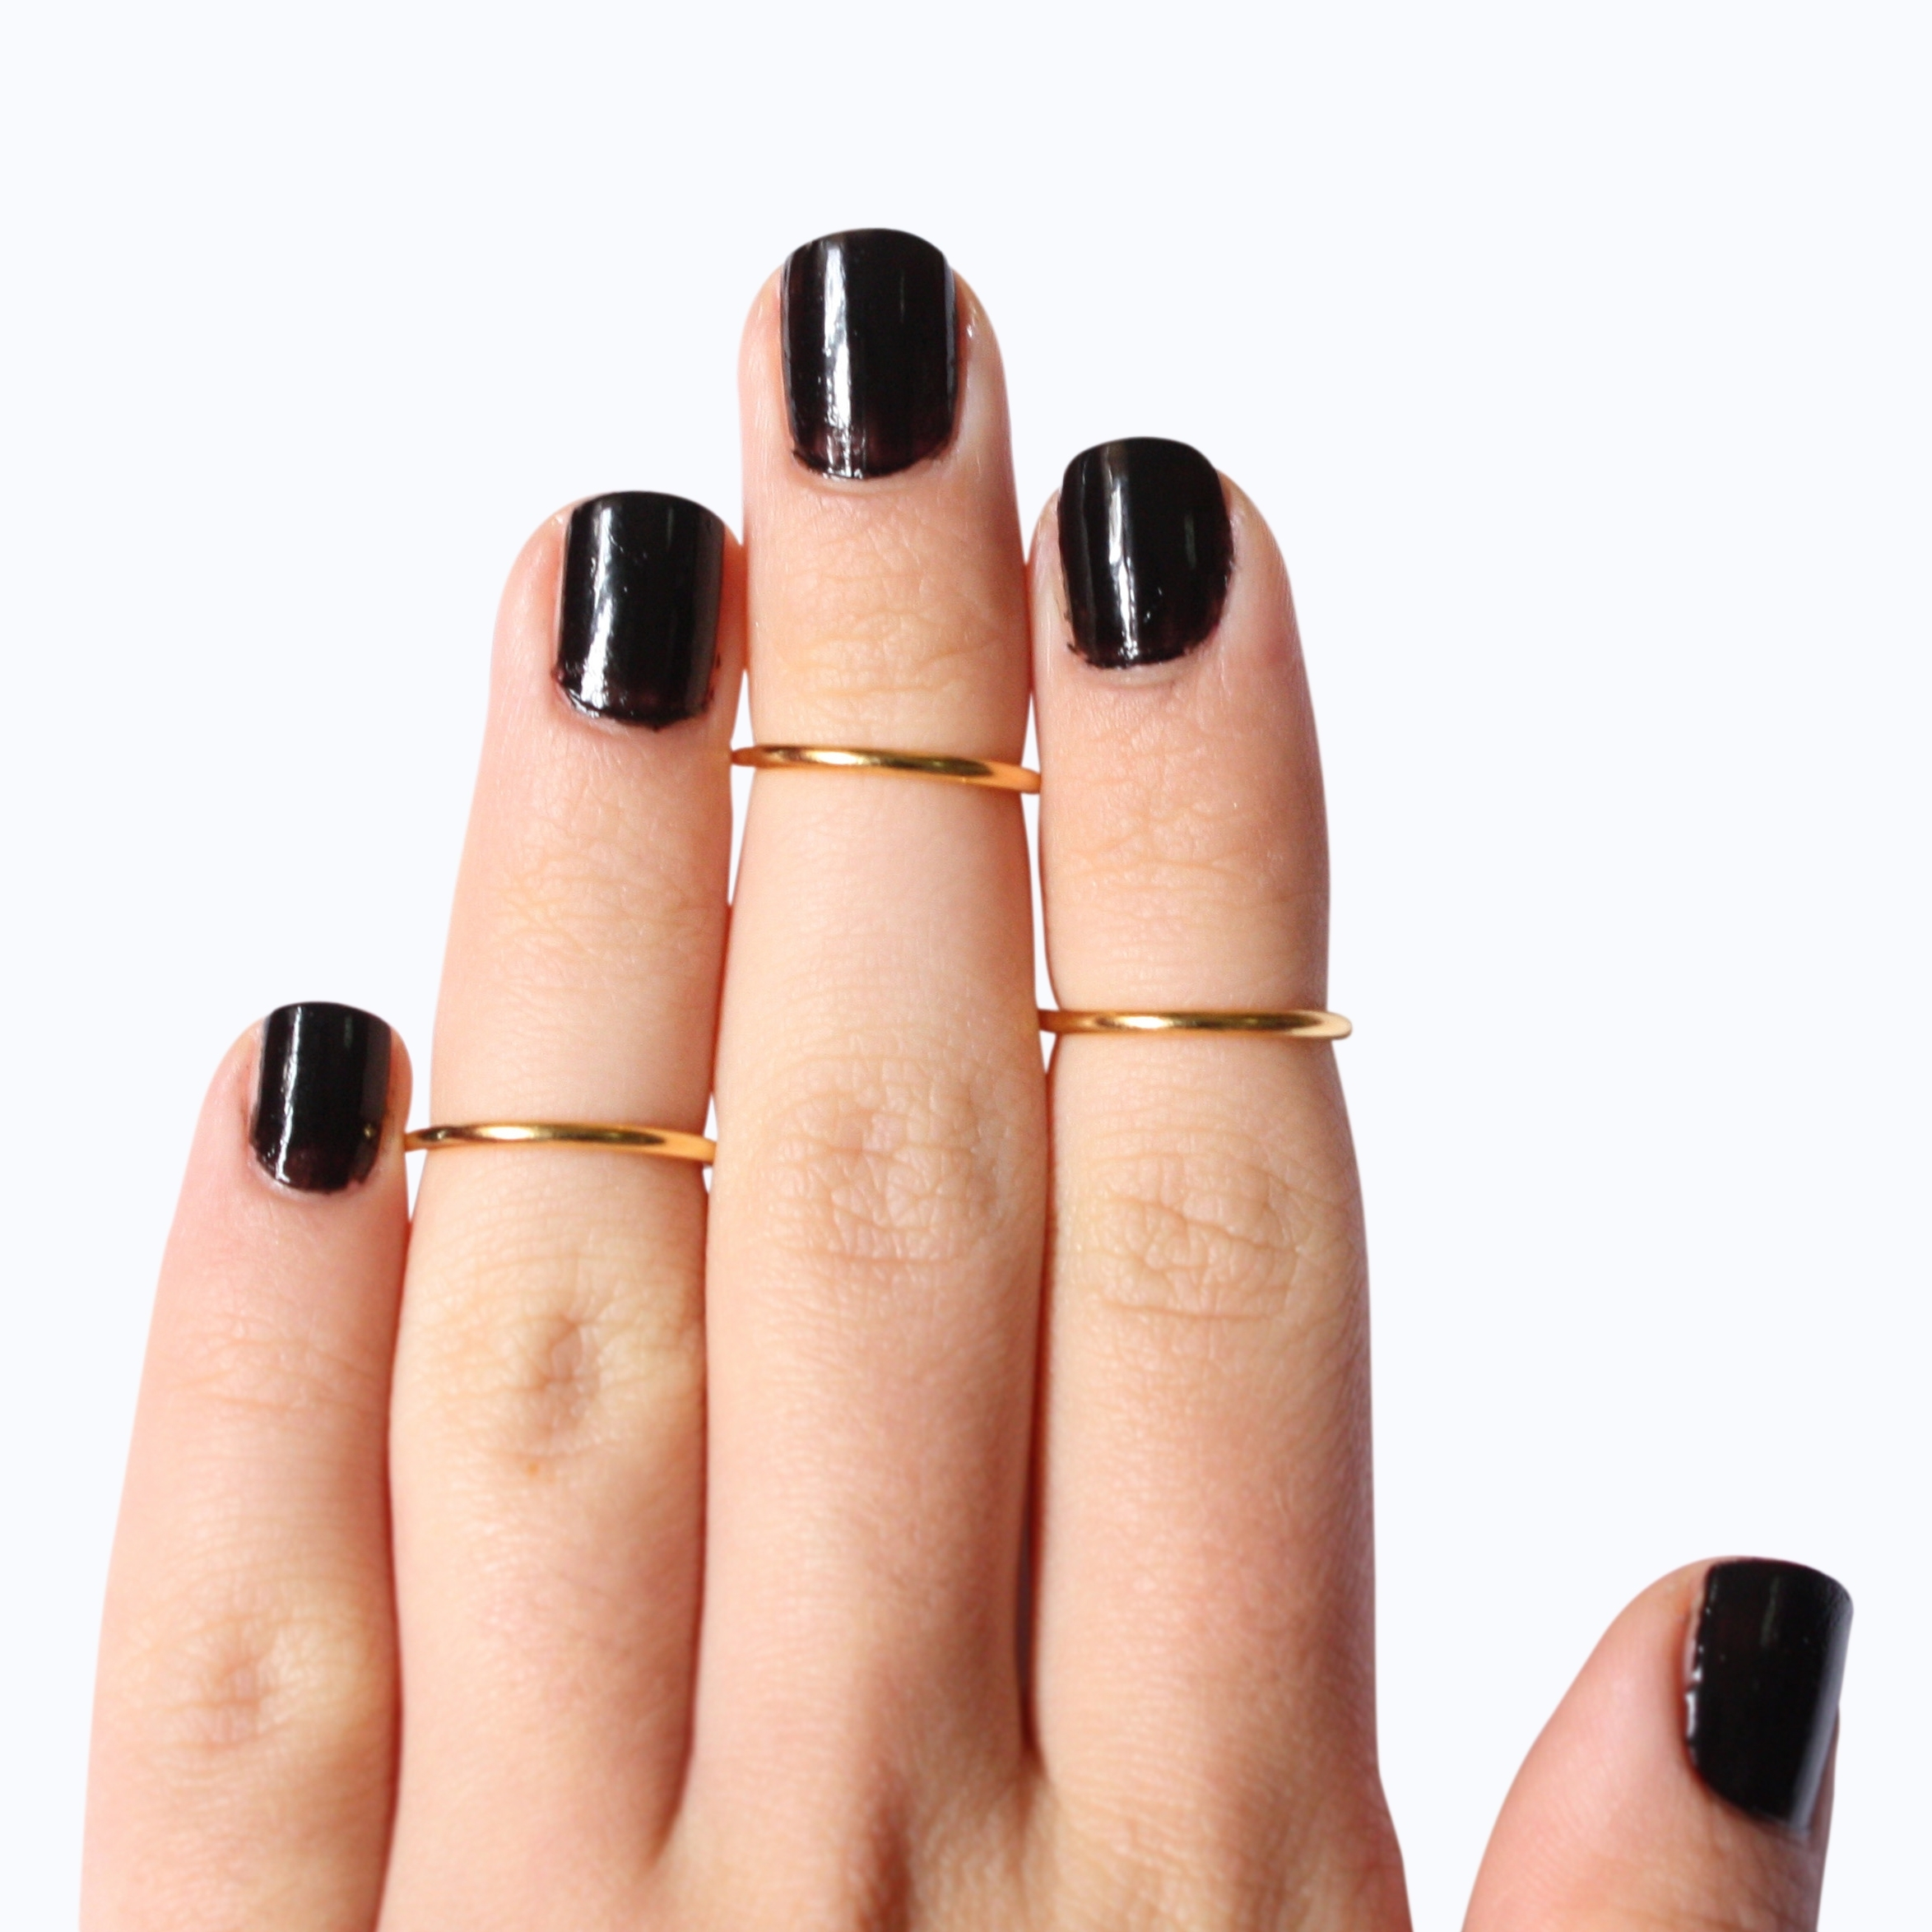 Gold Toe Rings | Midi Rings With Regard To Most Up To Date Gold Toe Rings (View 5 of 15)